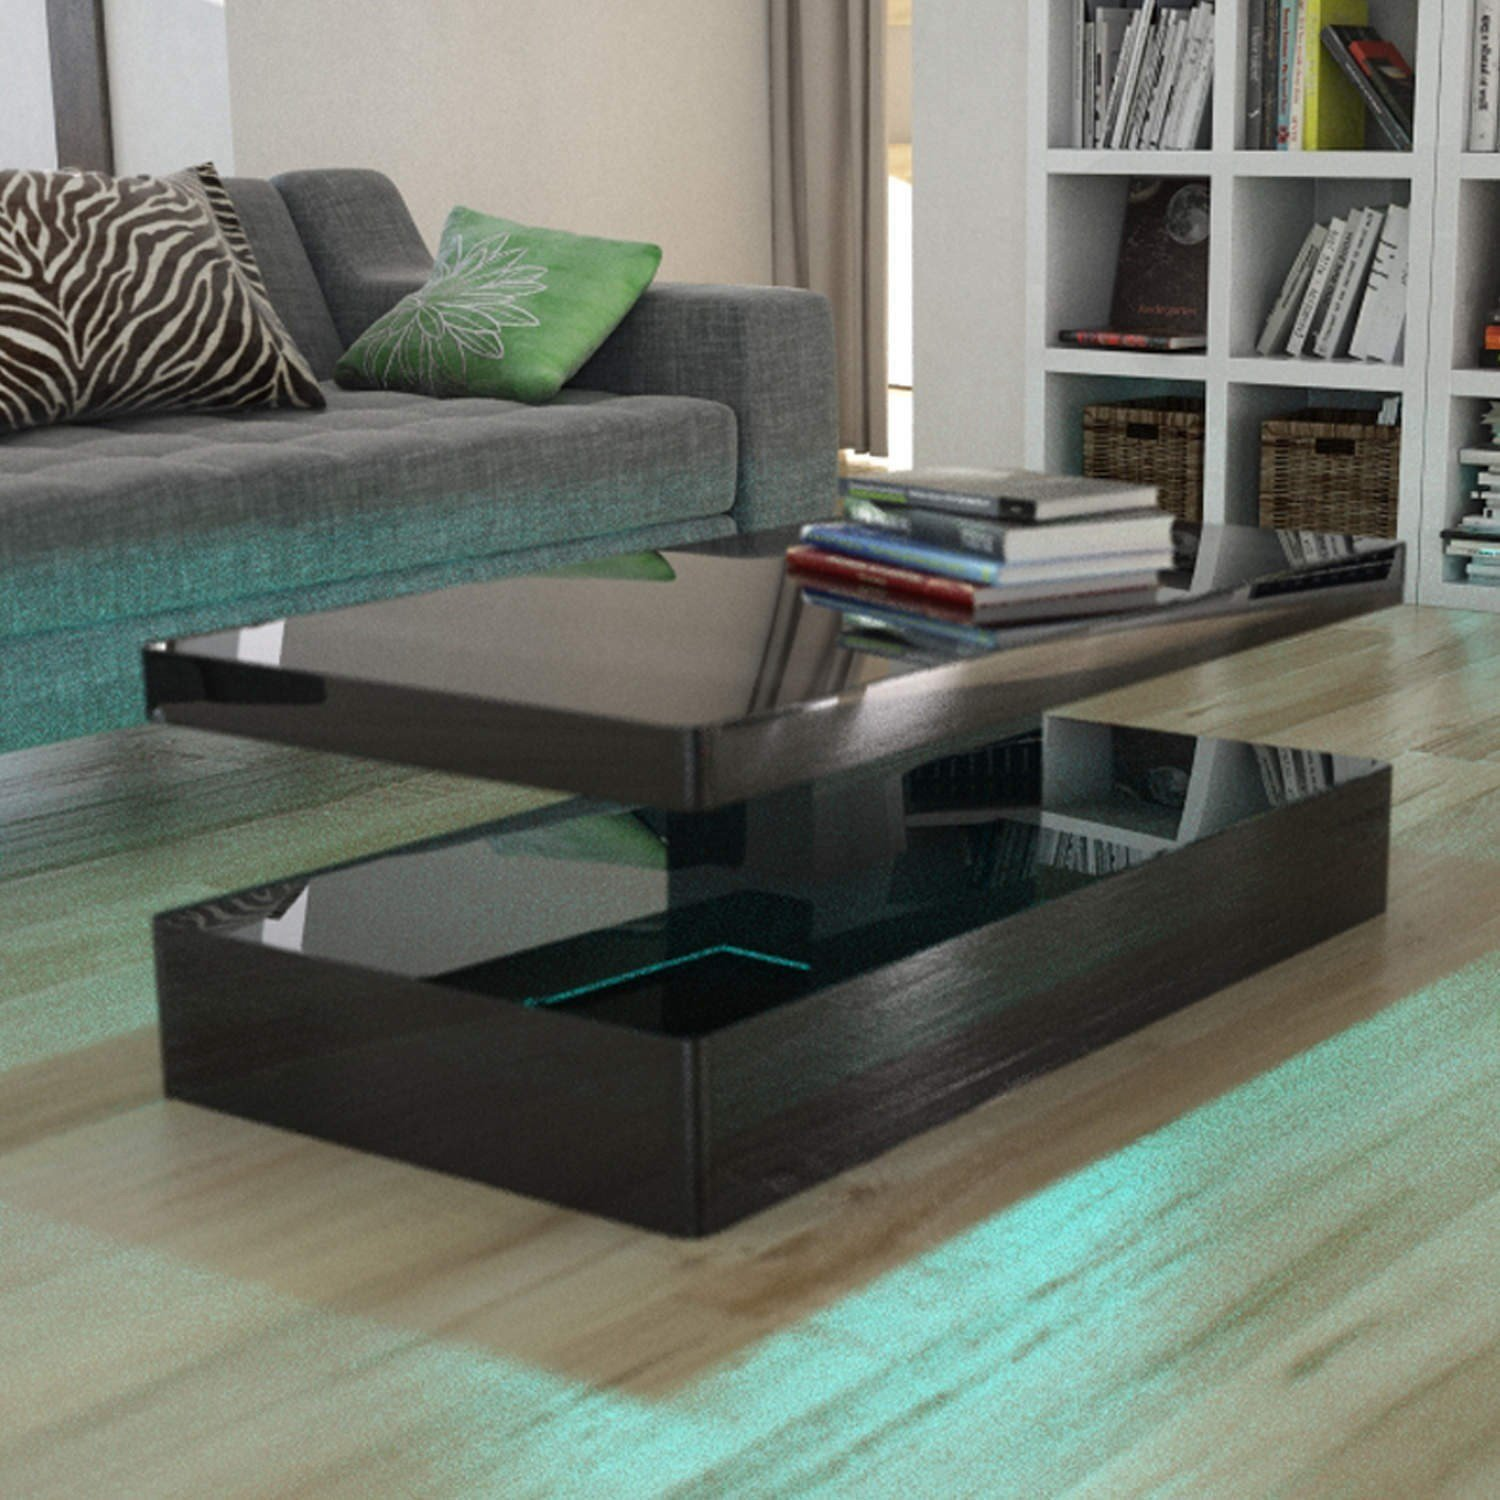 Arctic Black and White High Gloss Coffee Table Italian Design